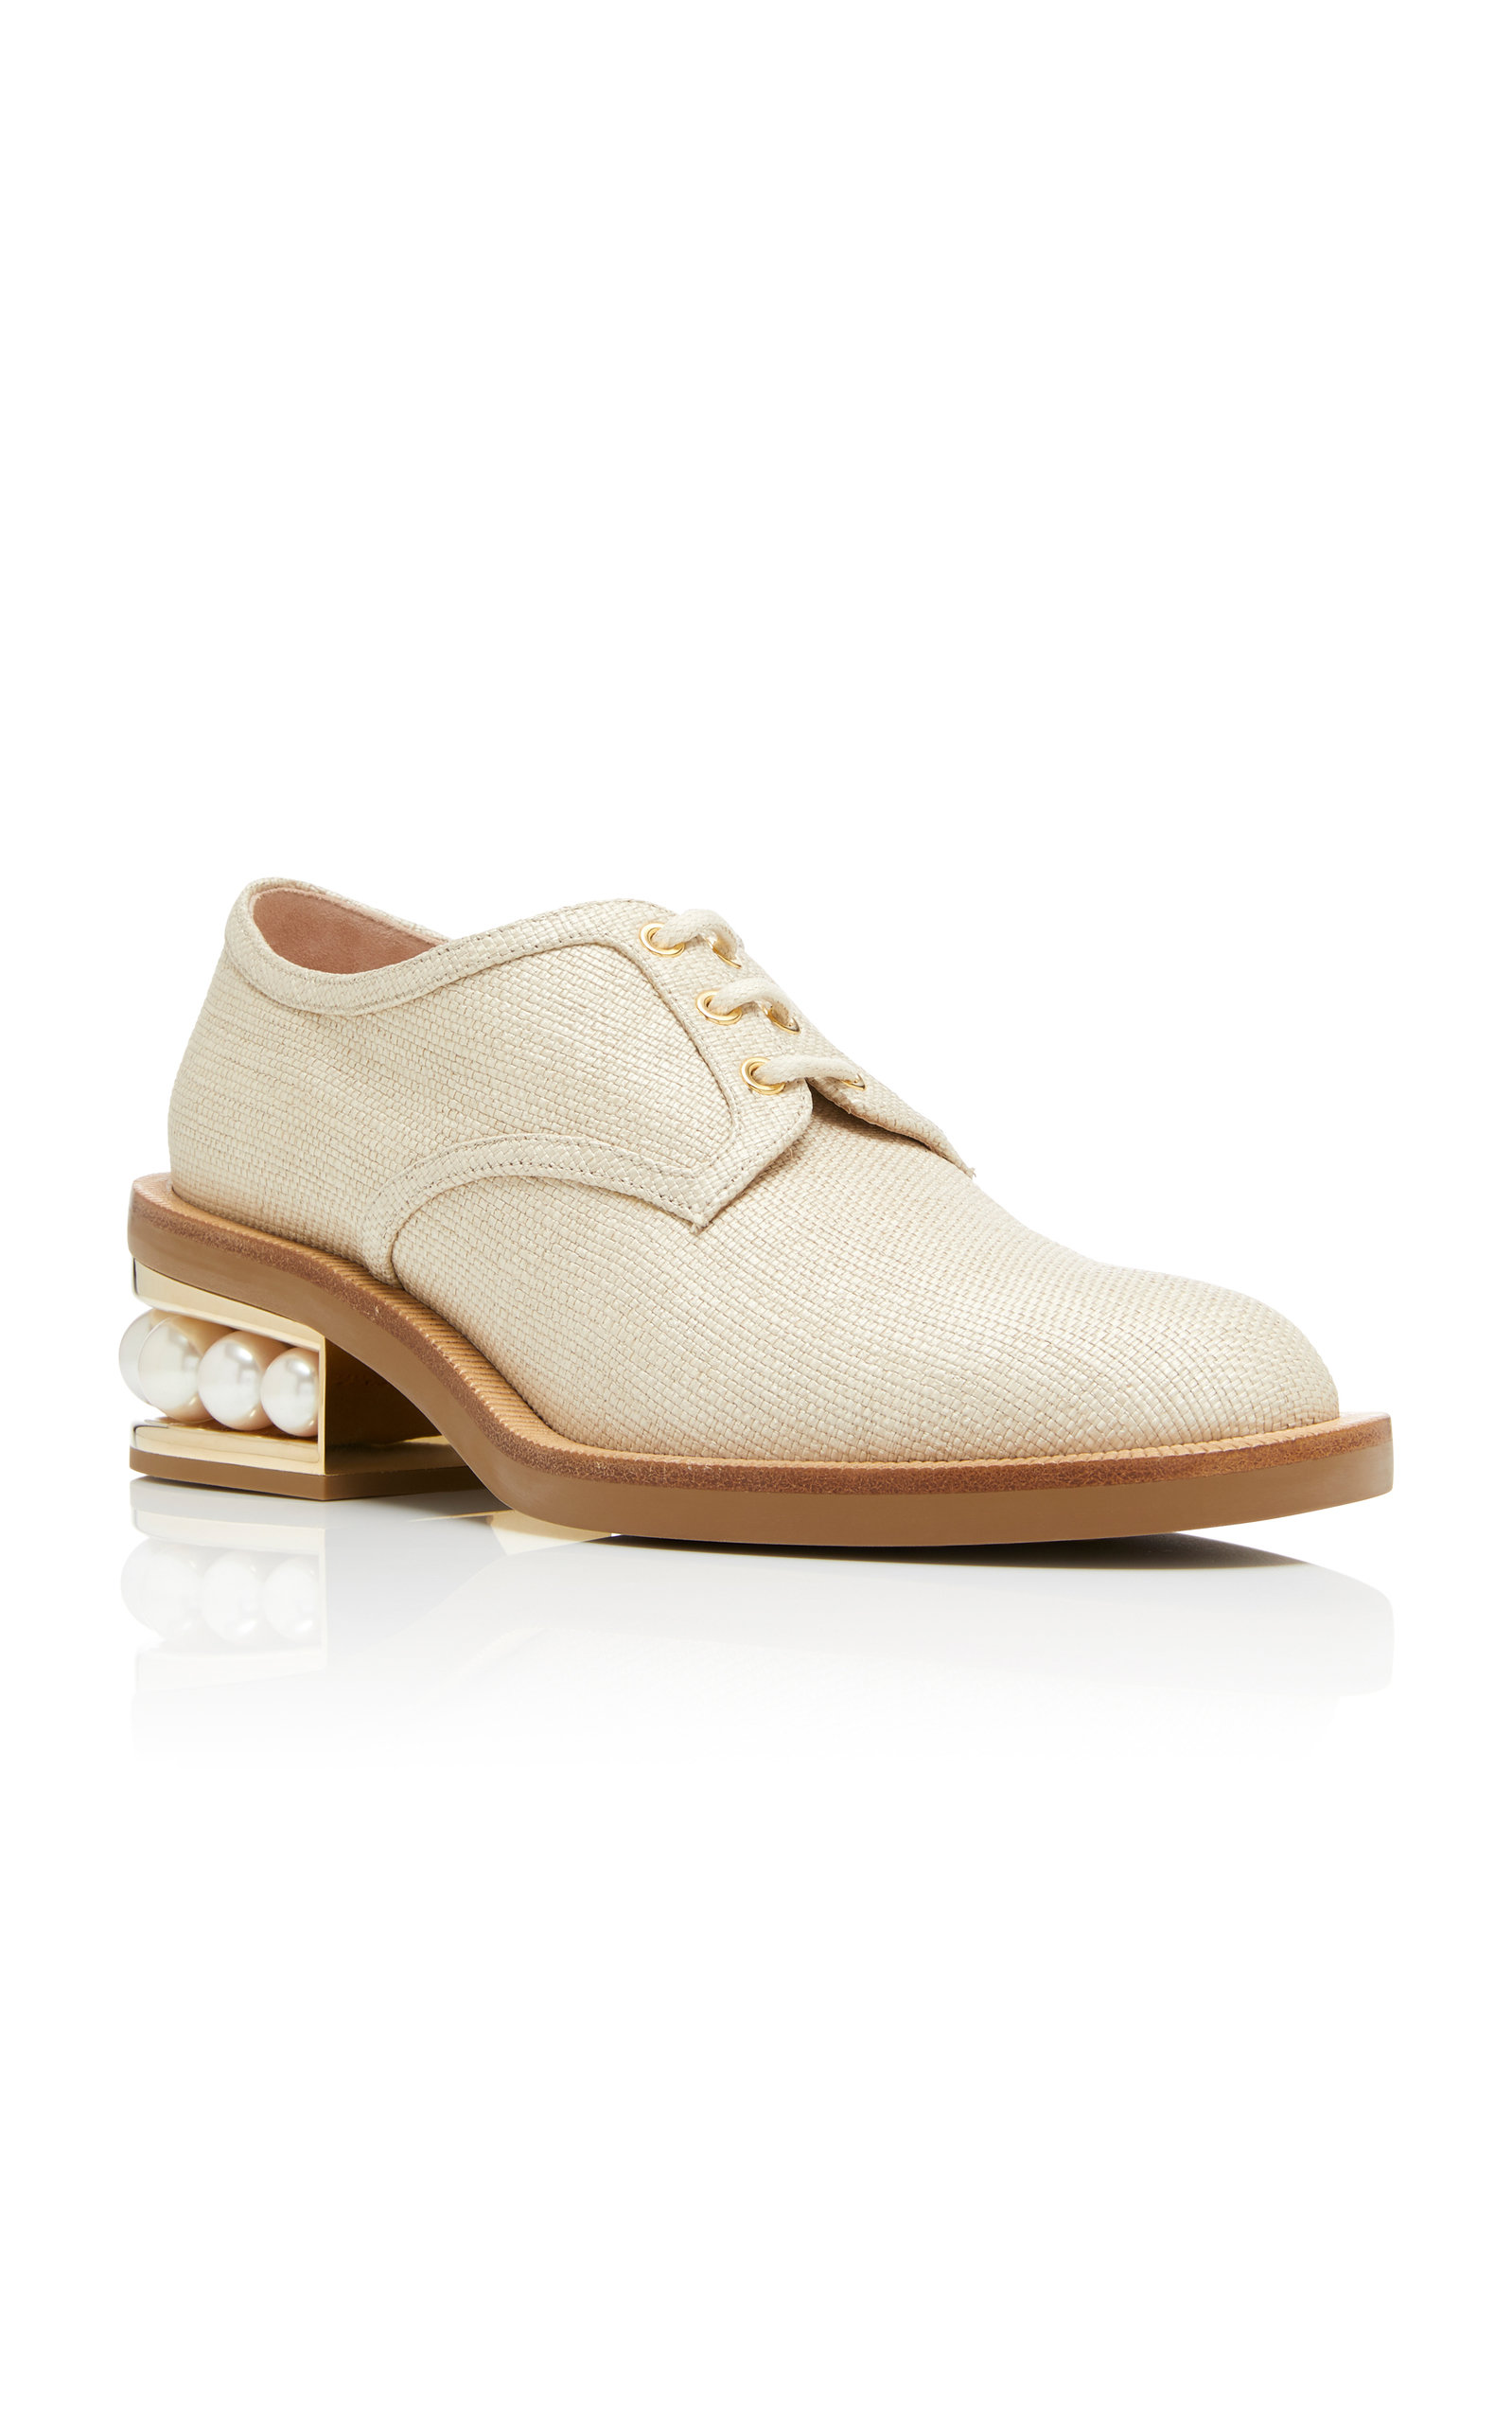 Pearl-Trimmed Woven Derby Shoes Nicholas Kirkwood Outlet Locations Cheap Online Buy Cheap Best Seller Clearance New Arrival xhIVN9vPE4